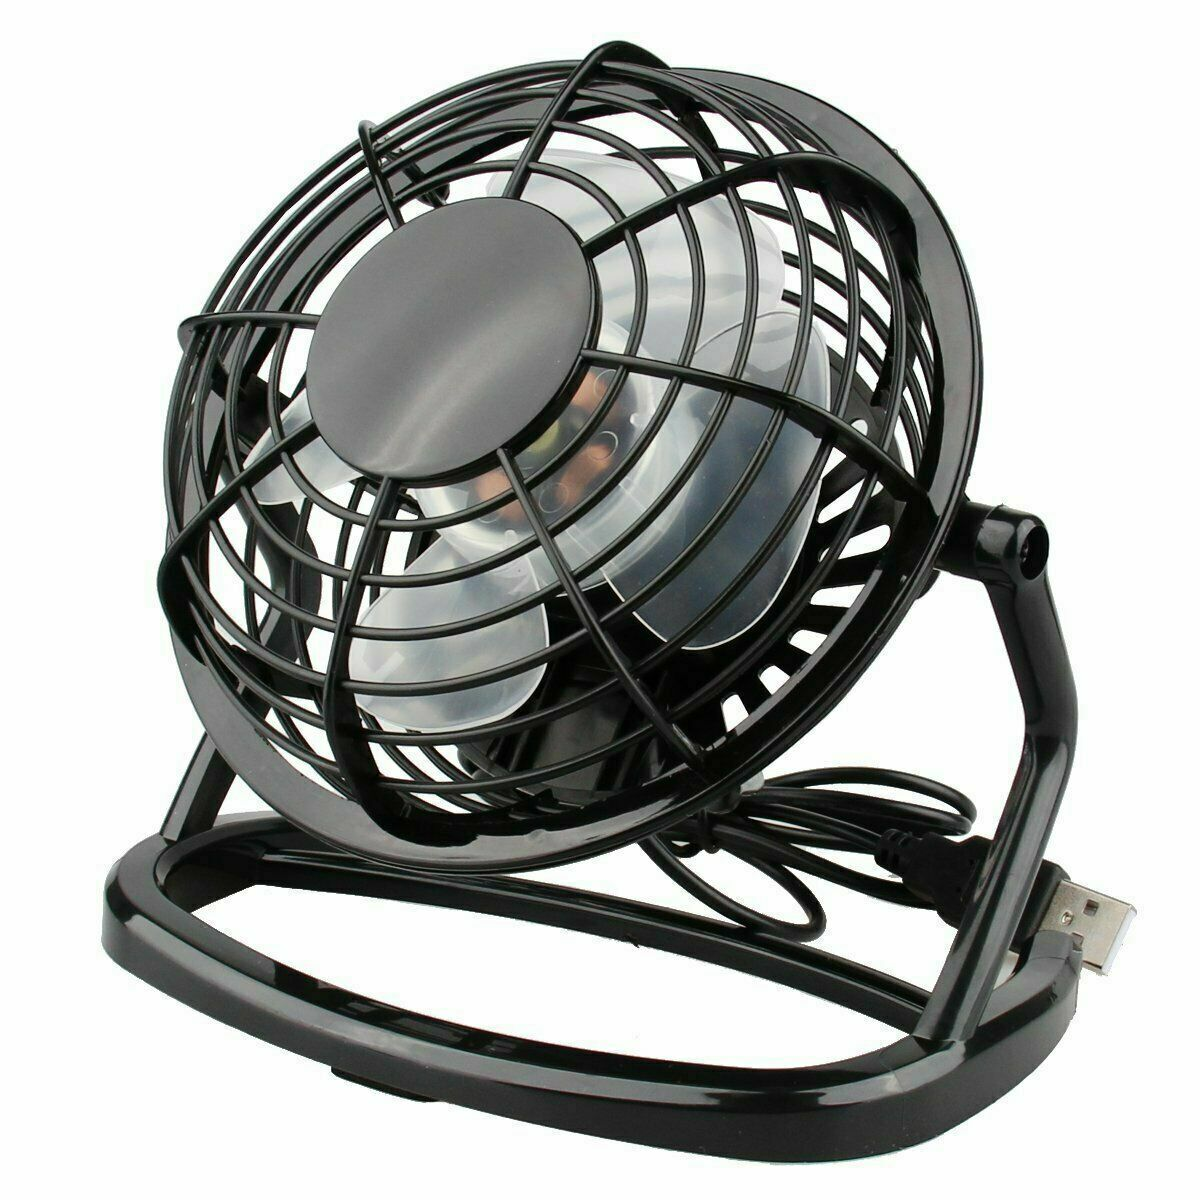 Desk Table Fan Personal USB Small Air Circulator Quiet Mini Portable Retro Heating, Cooling & Air